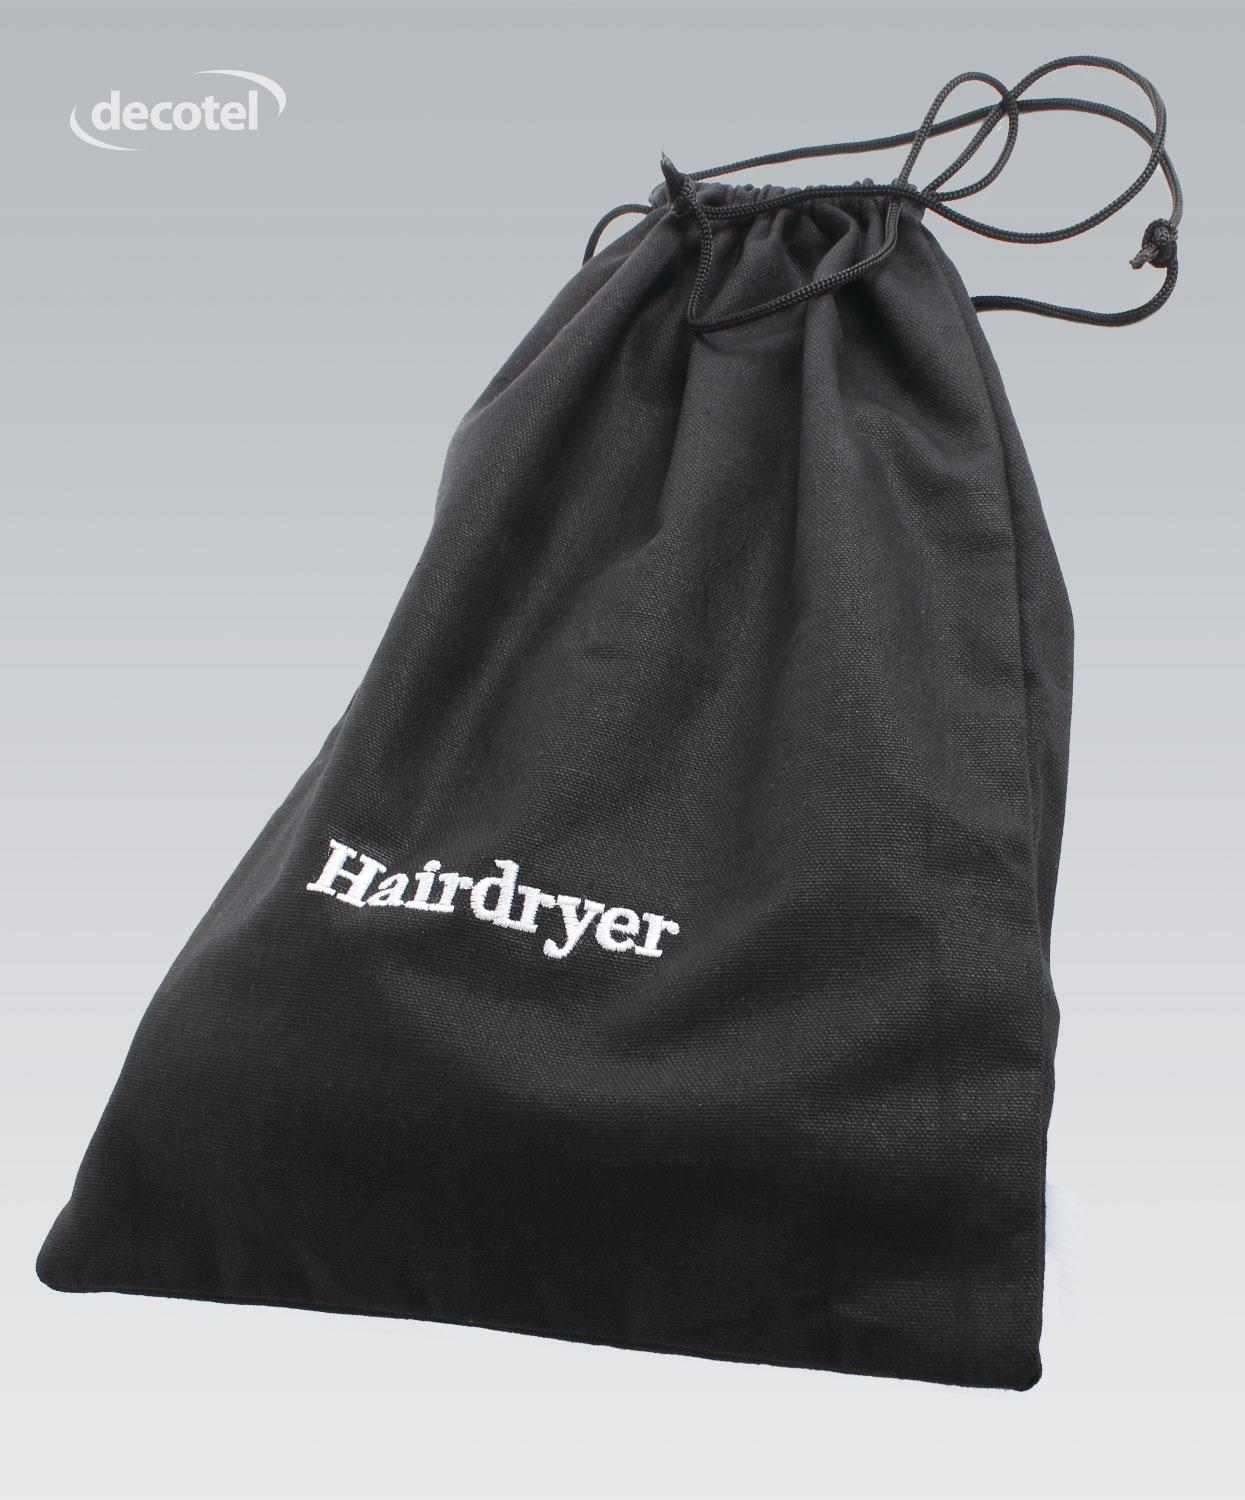 Hairdryer Bag